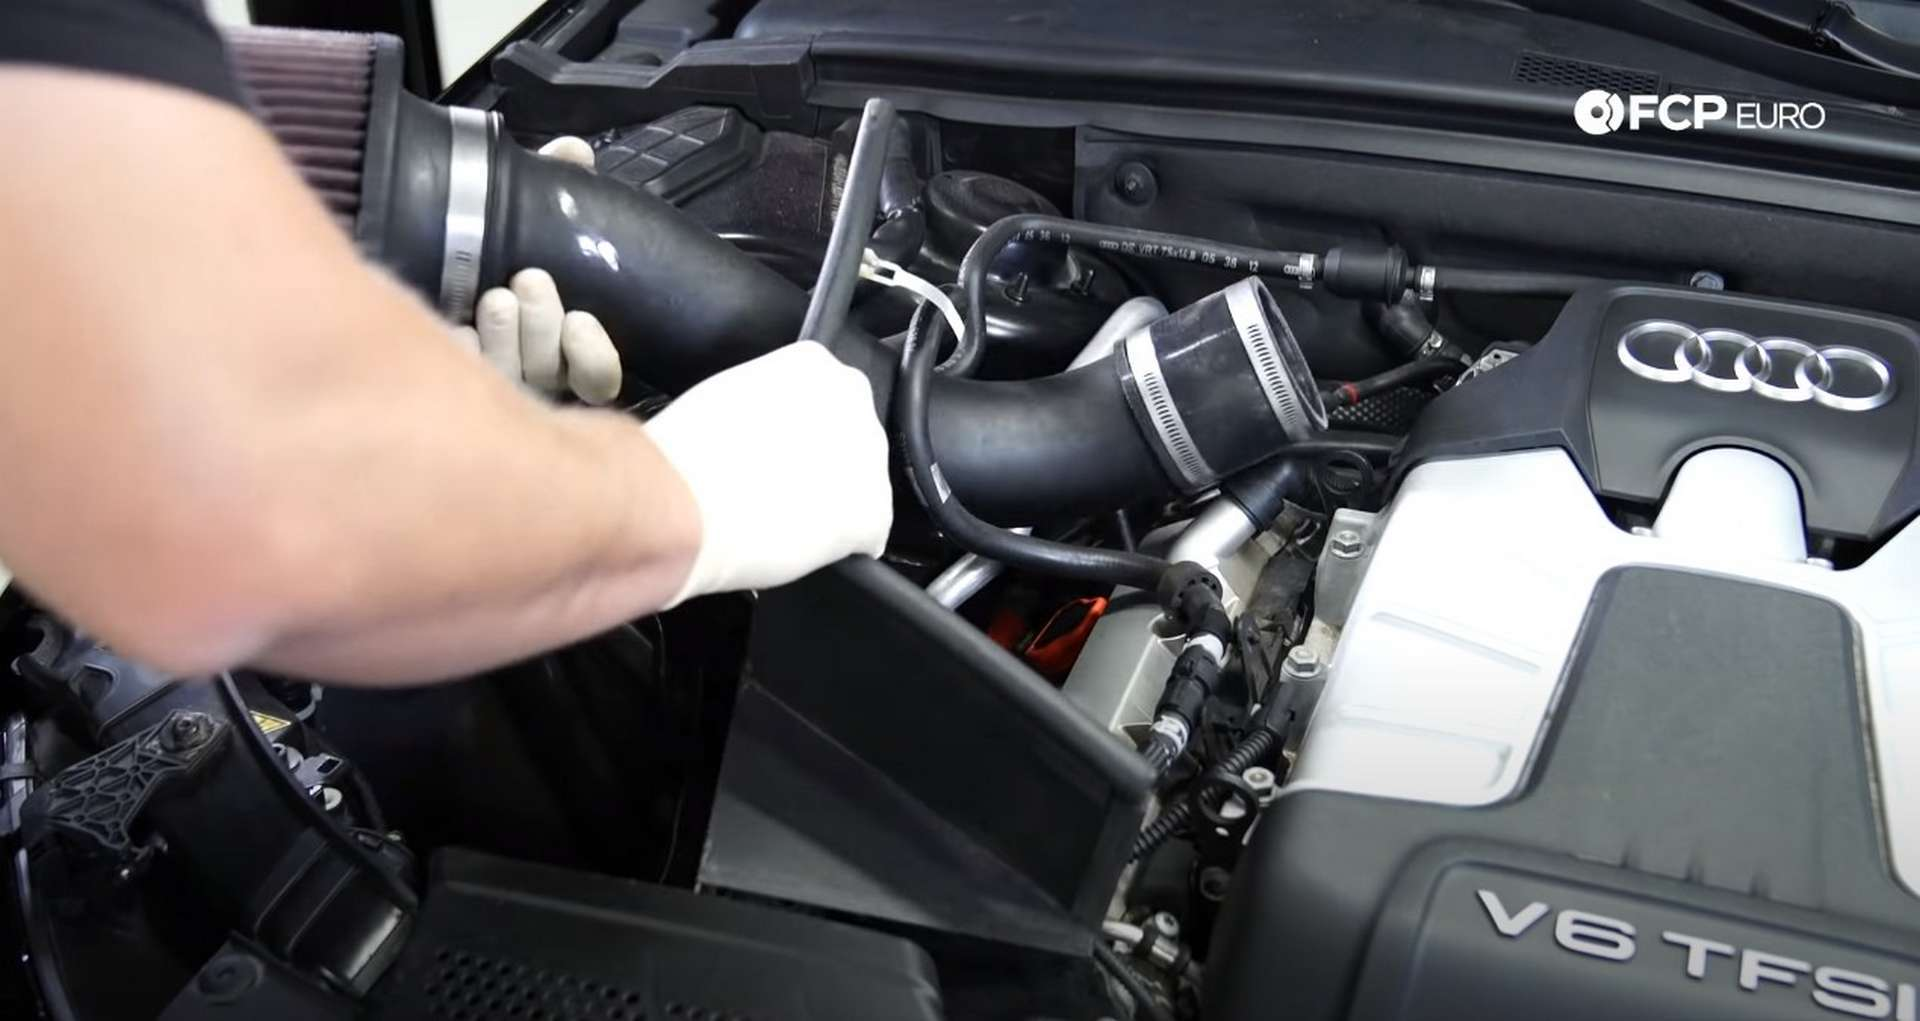 DIY Audi 3.0T PCV/AOS Replacement removing the intake assembly